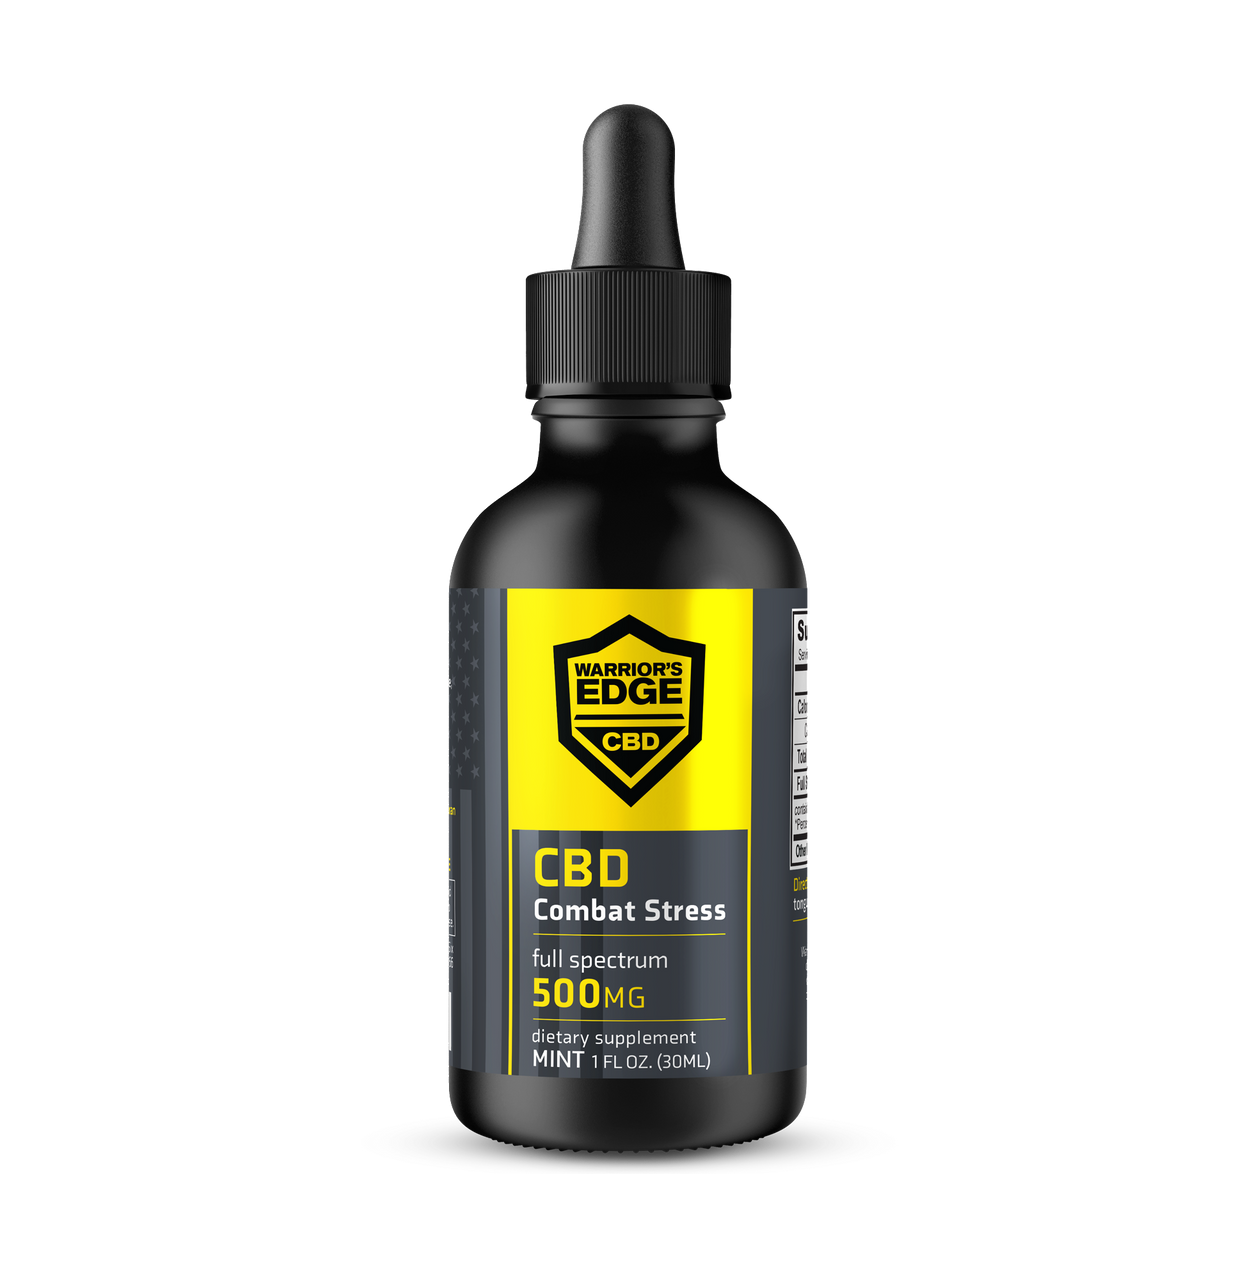 Combat Stress CBD Tincture (500mg CBD) - 1oz Bottle